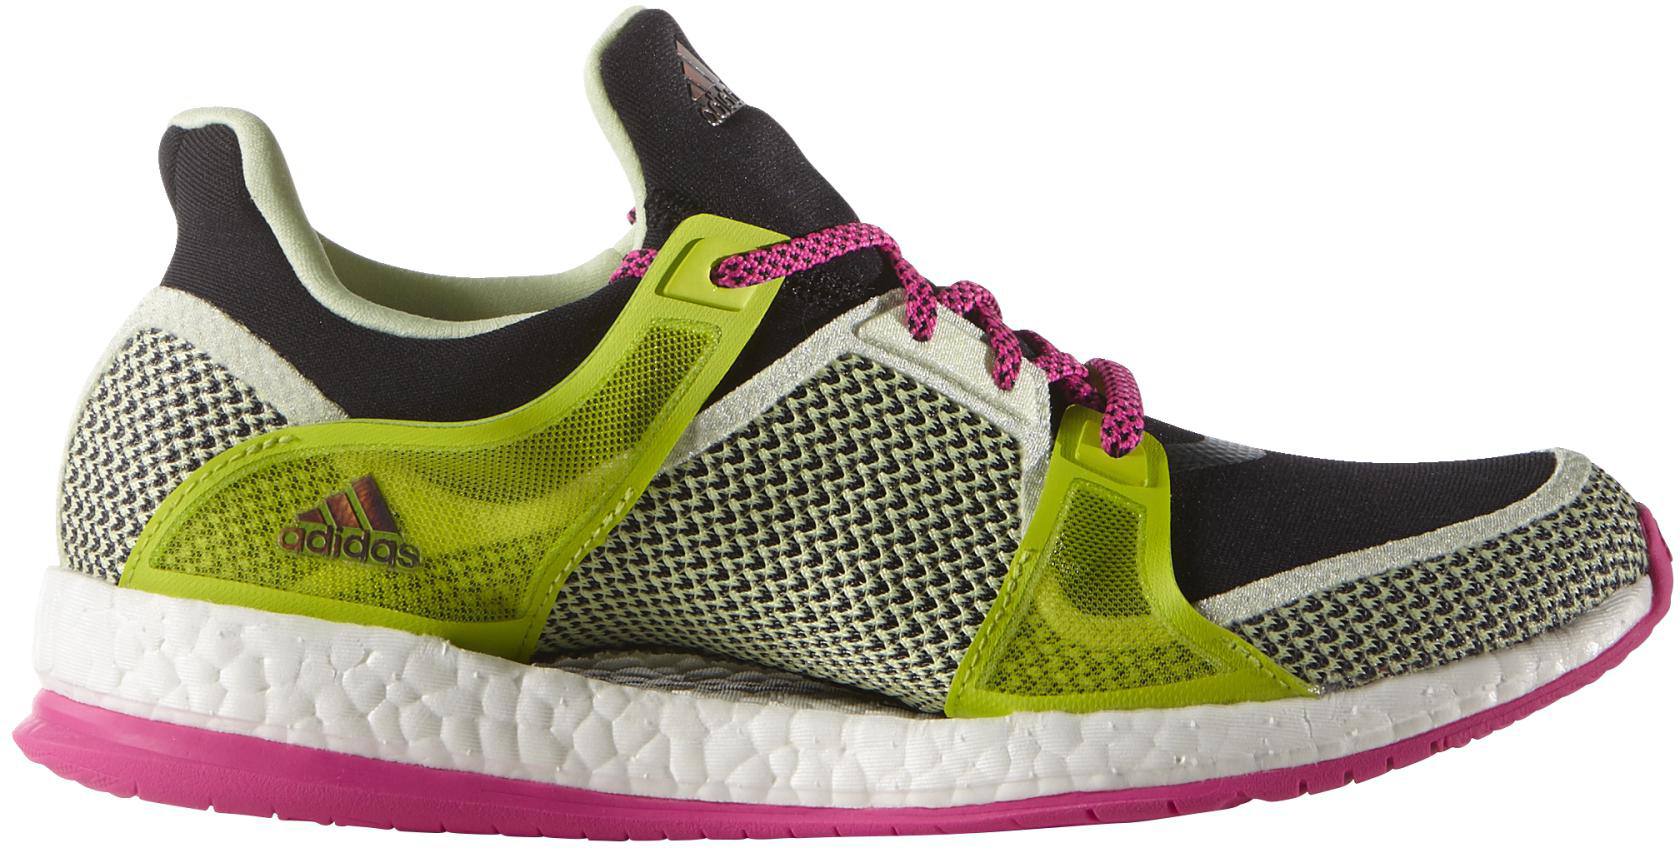 Adidas Chaussures Femme Fitness Et Cross Fit Pure Boost